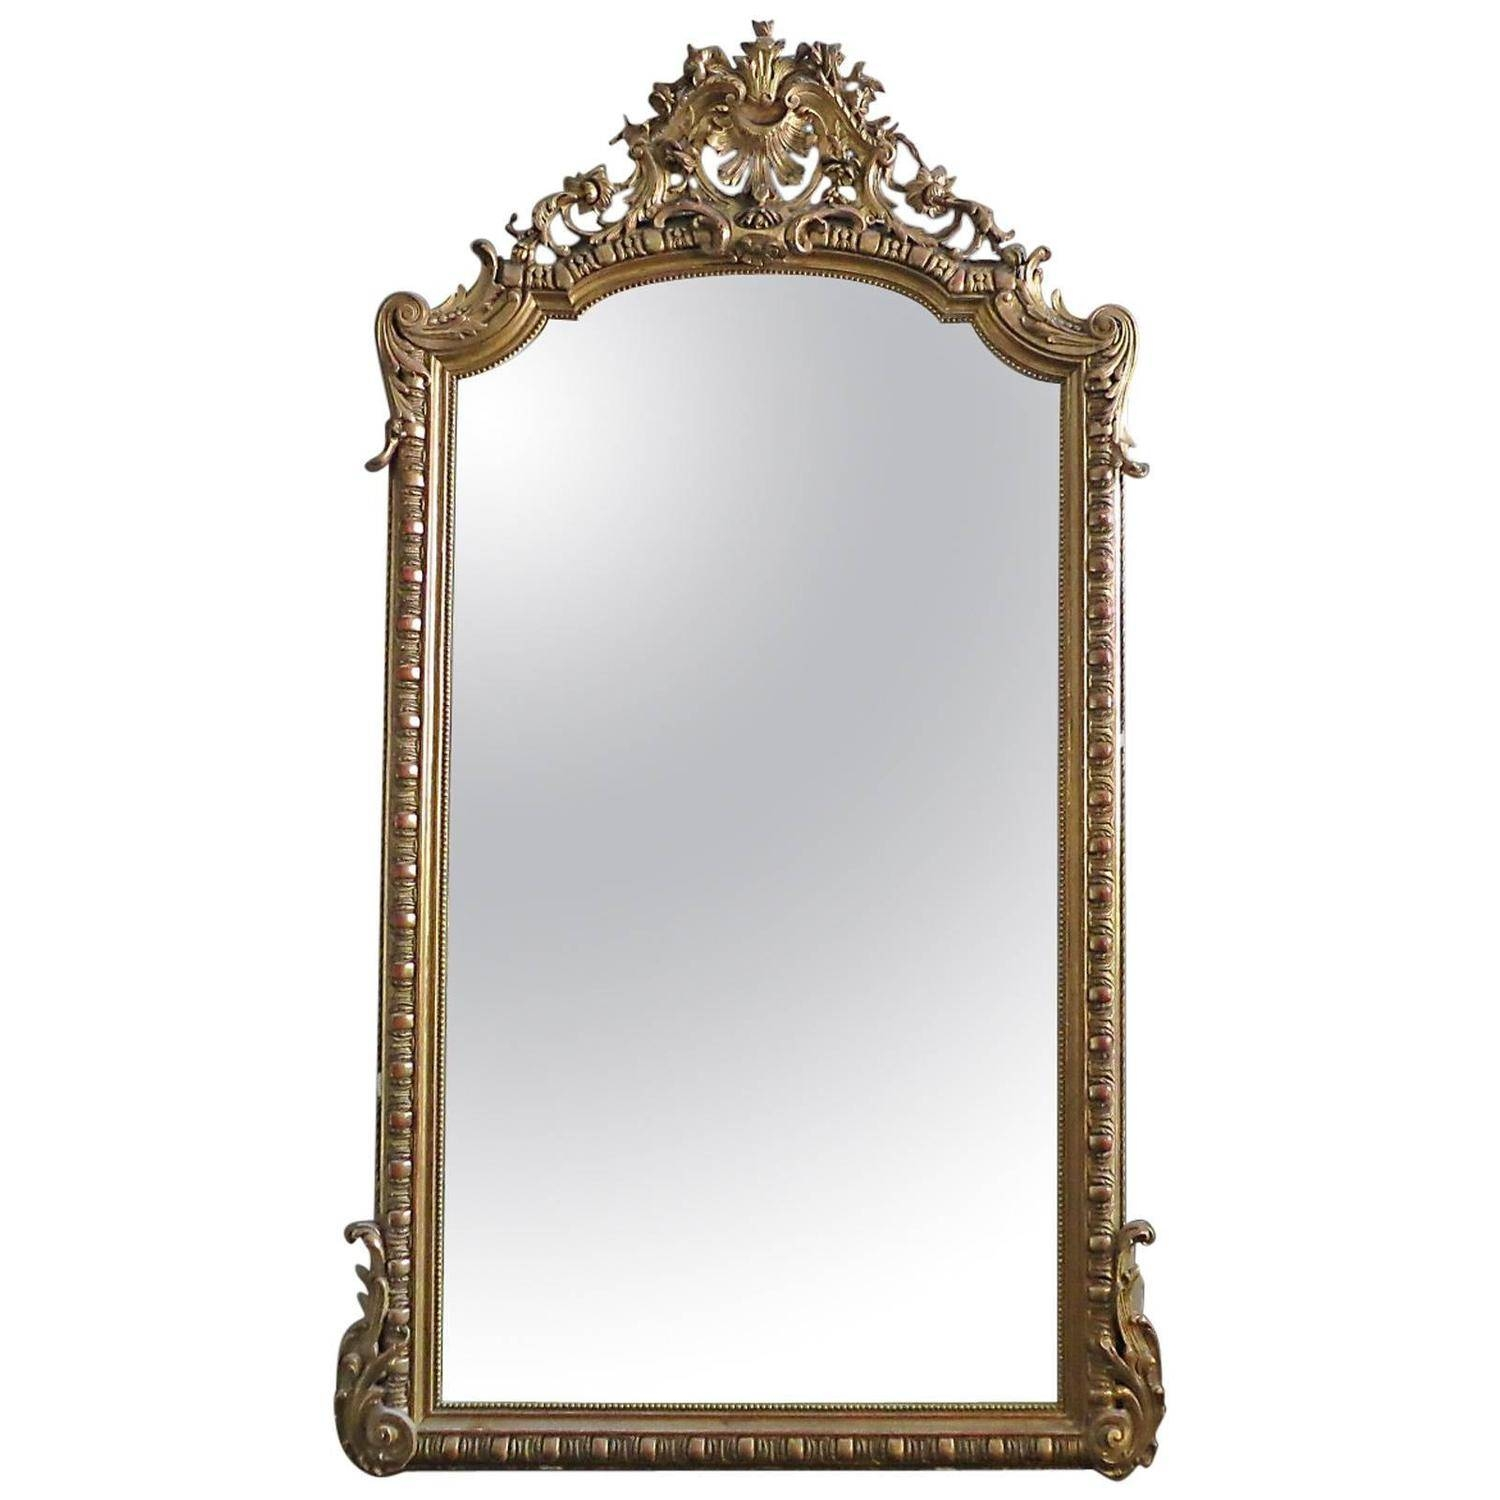 Large Antique French Gold Gilt Mirror At 1Stdibs Pertaining To Antique Gold Mirrors (View 17 of 25)